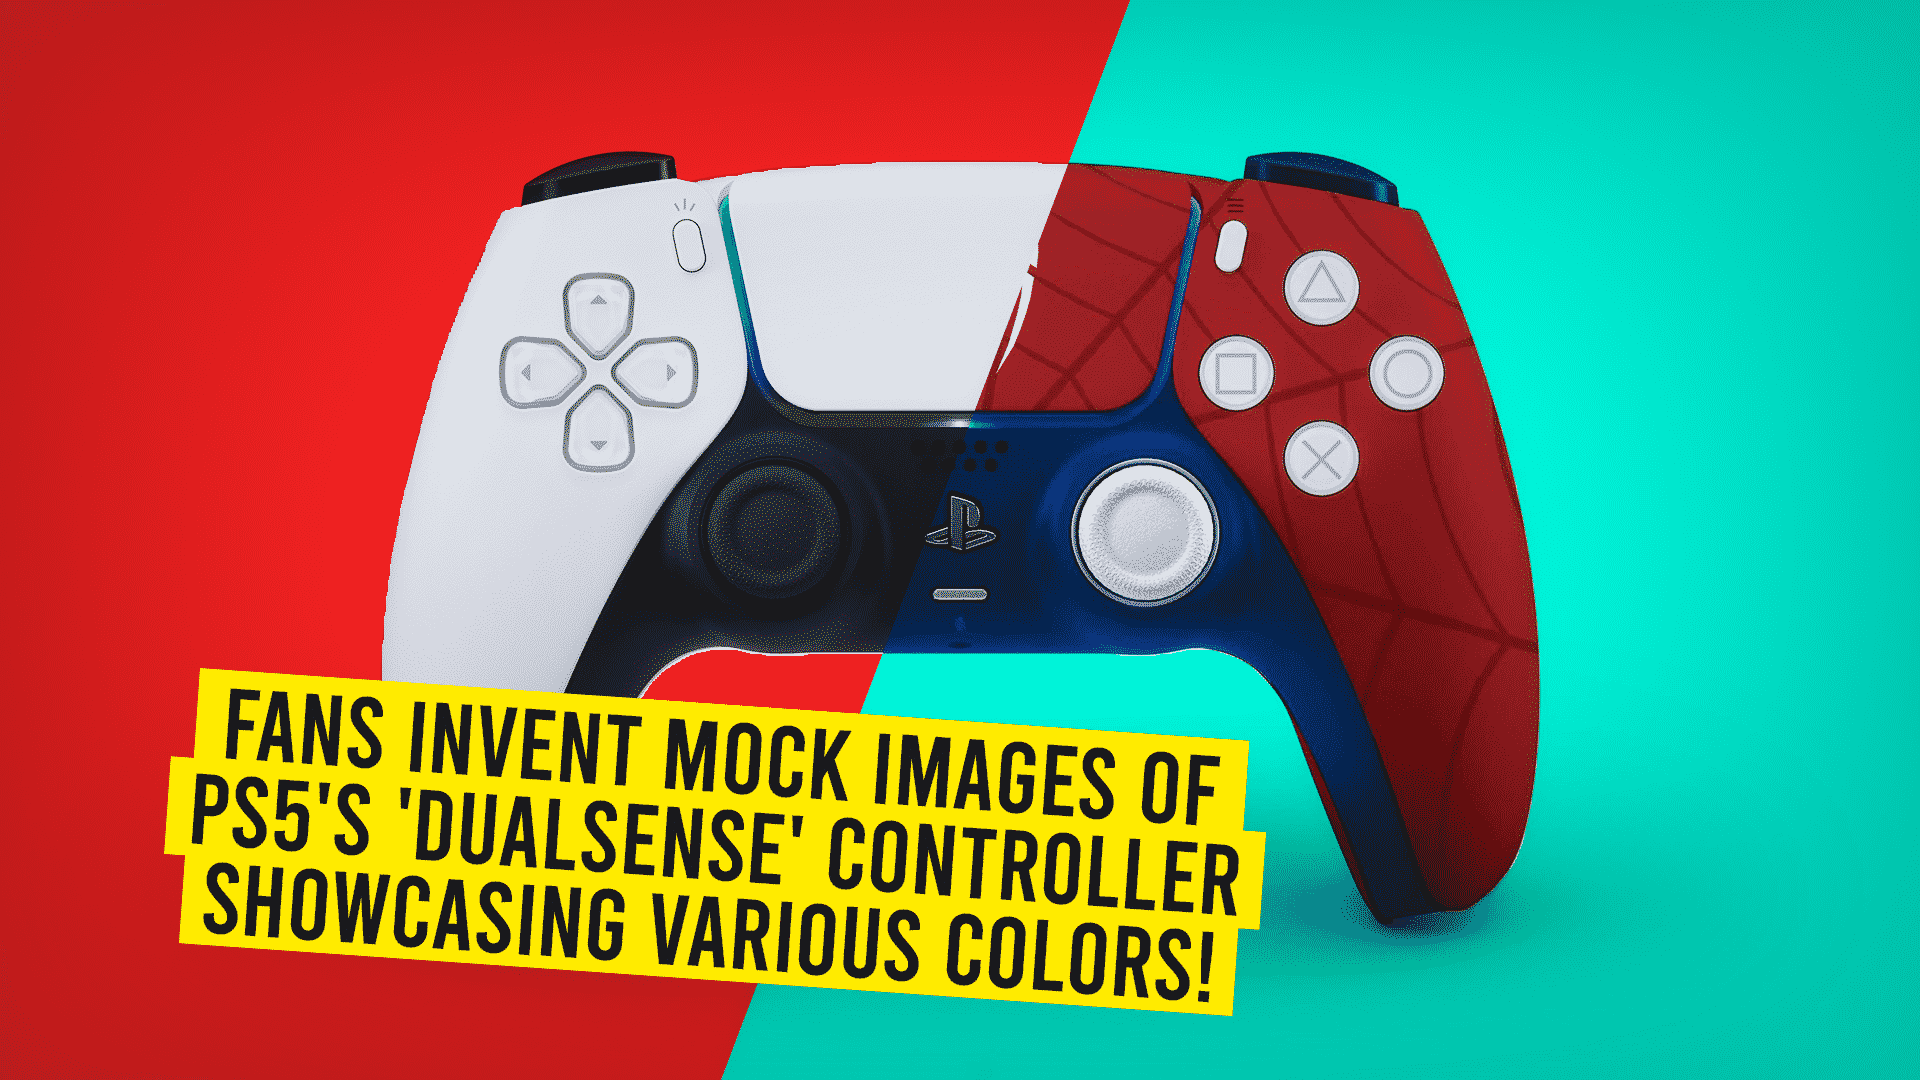 Fans Invent Mock Images of PS5's 'DualSense' Controller Showcasing Various Colors!